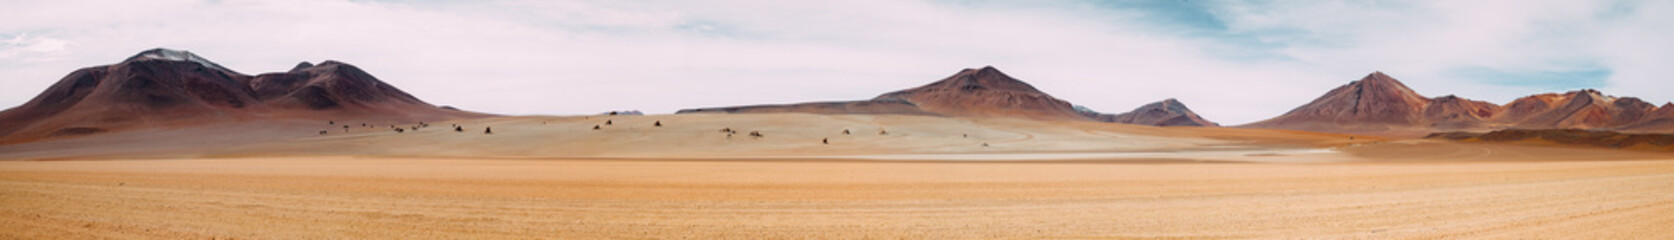 Foto op Plexiglas Droogte The vast expanse of nothingness - Atacama Desert - Bolivia